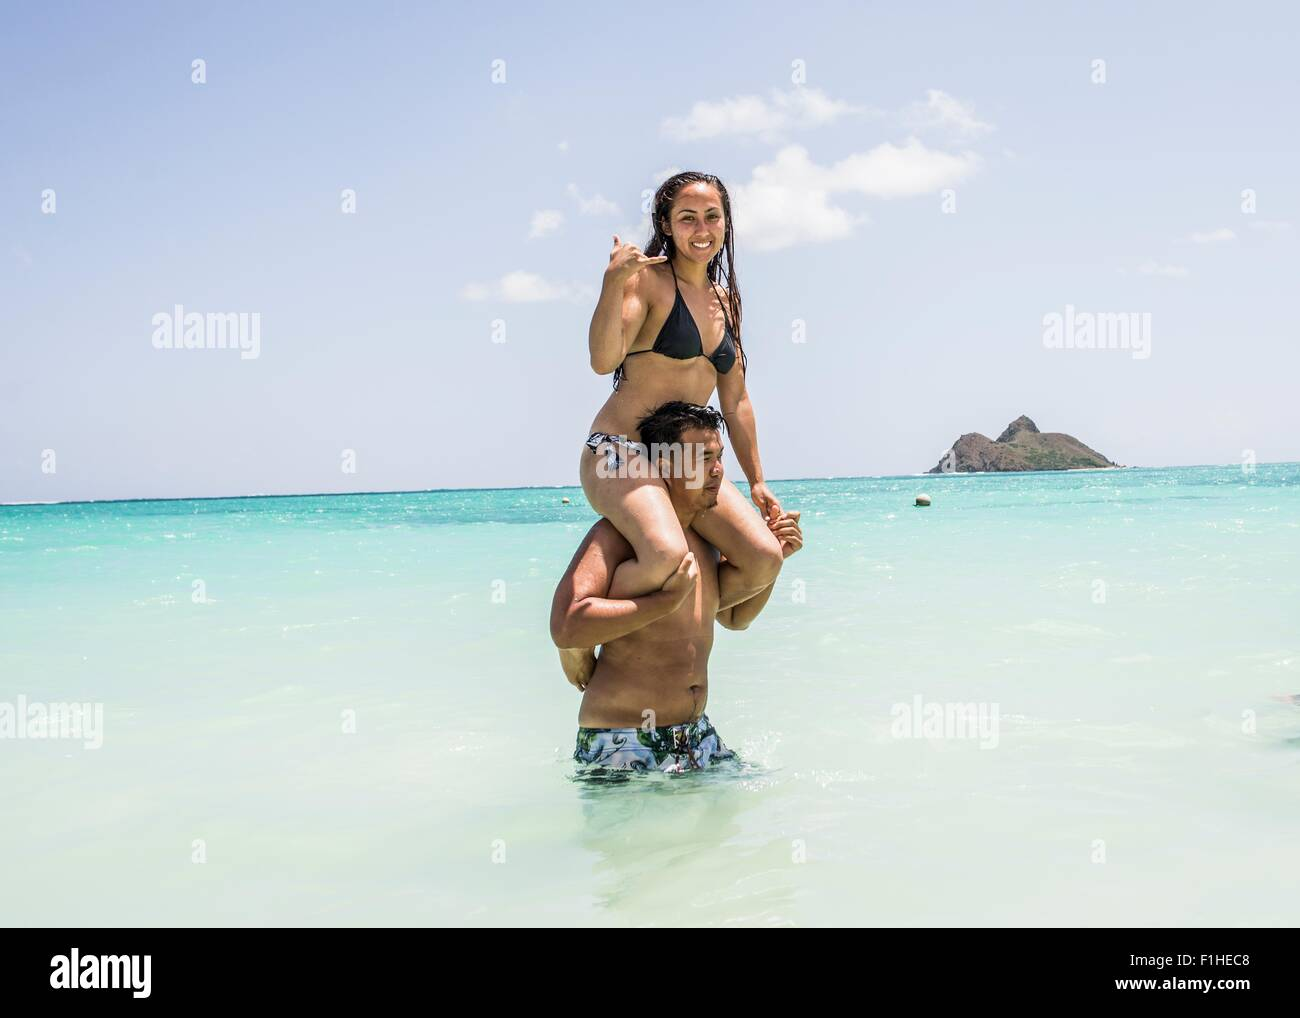 Portrait of young woman getting shoulder ride from boyfriend in sea at Lanikai Beach, Oahu, Hawaii, USA - Stock Image